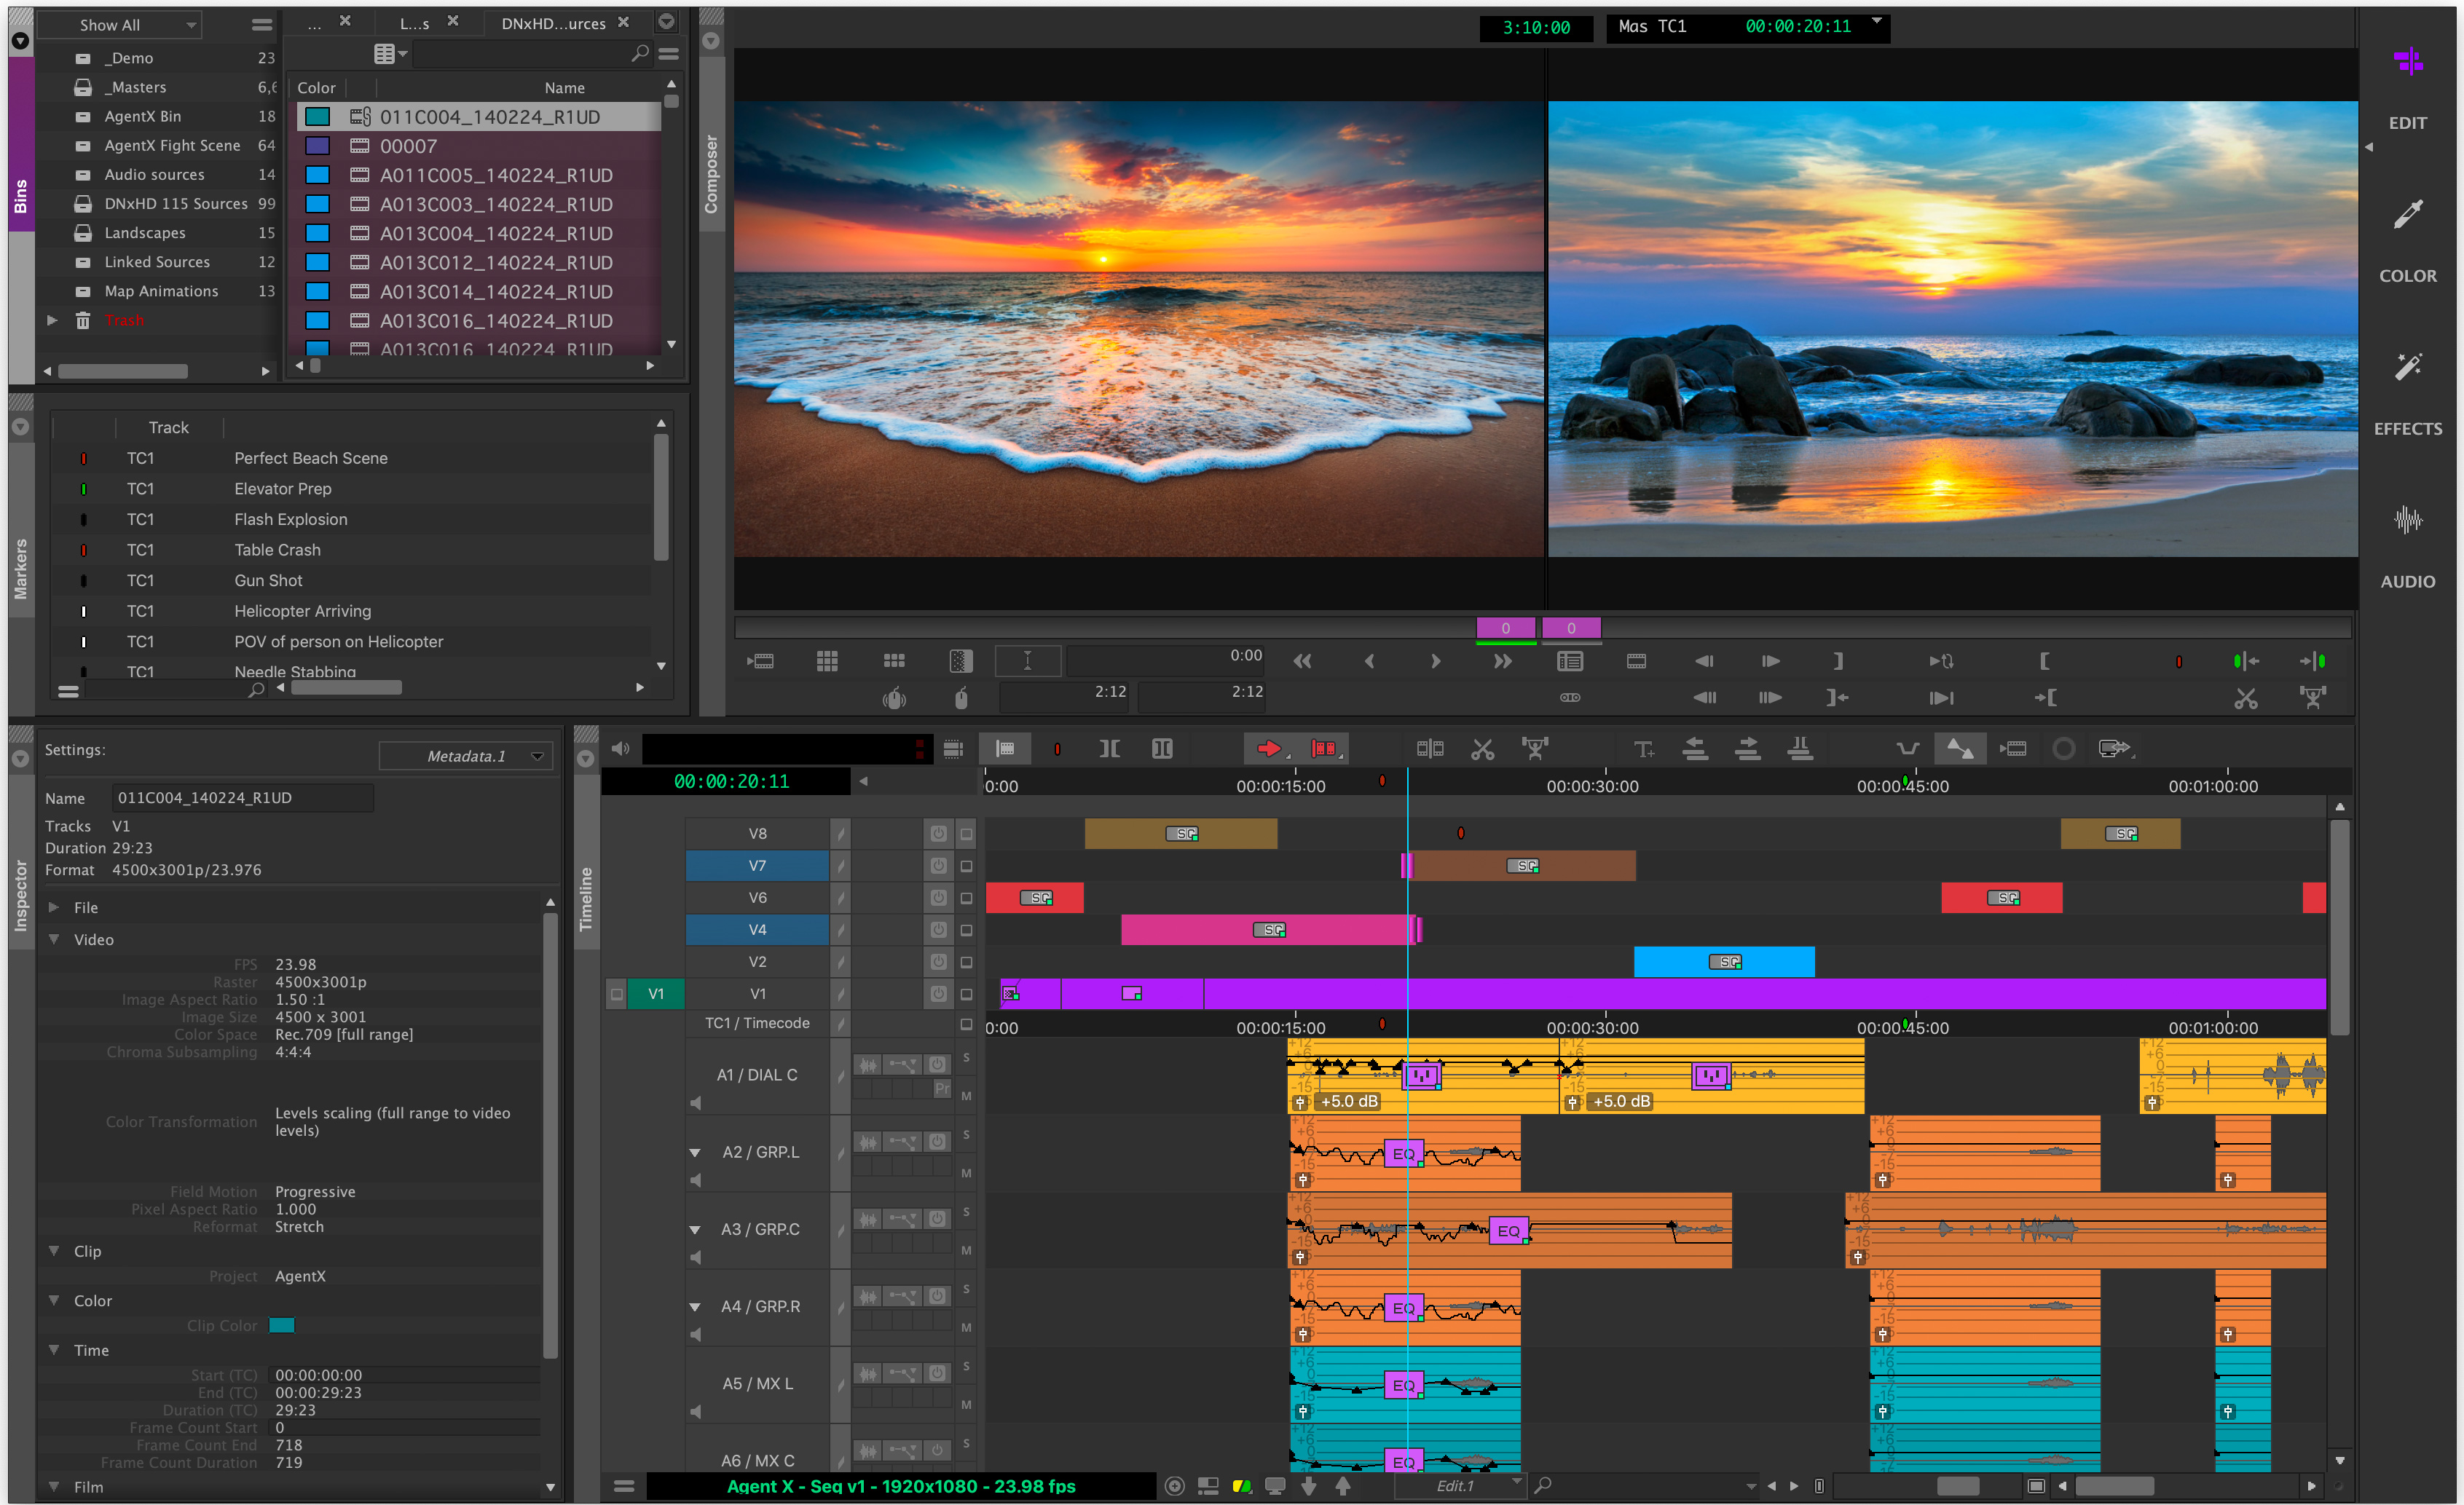 Avid Media Composer 2019 comes with new media engine and workspaces, 16K finishing and more